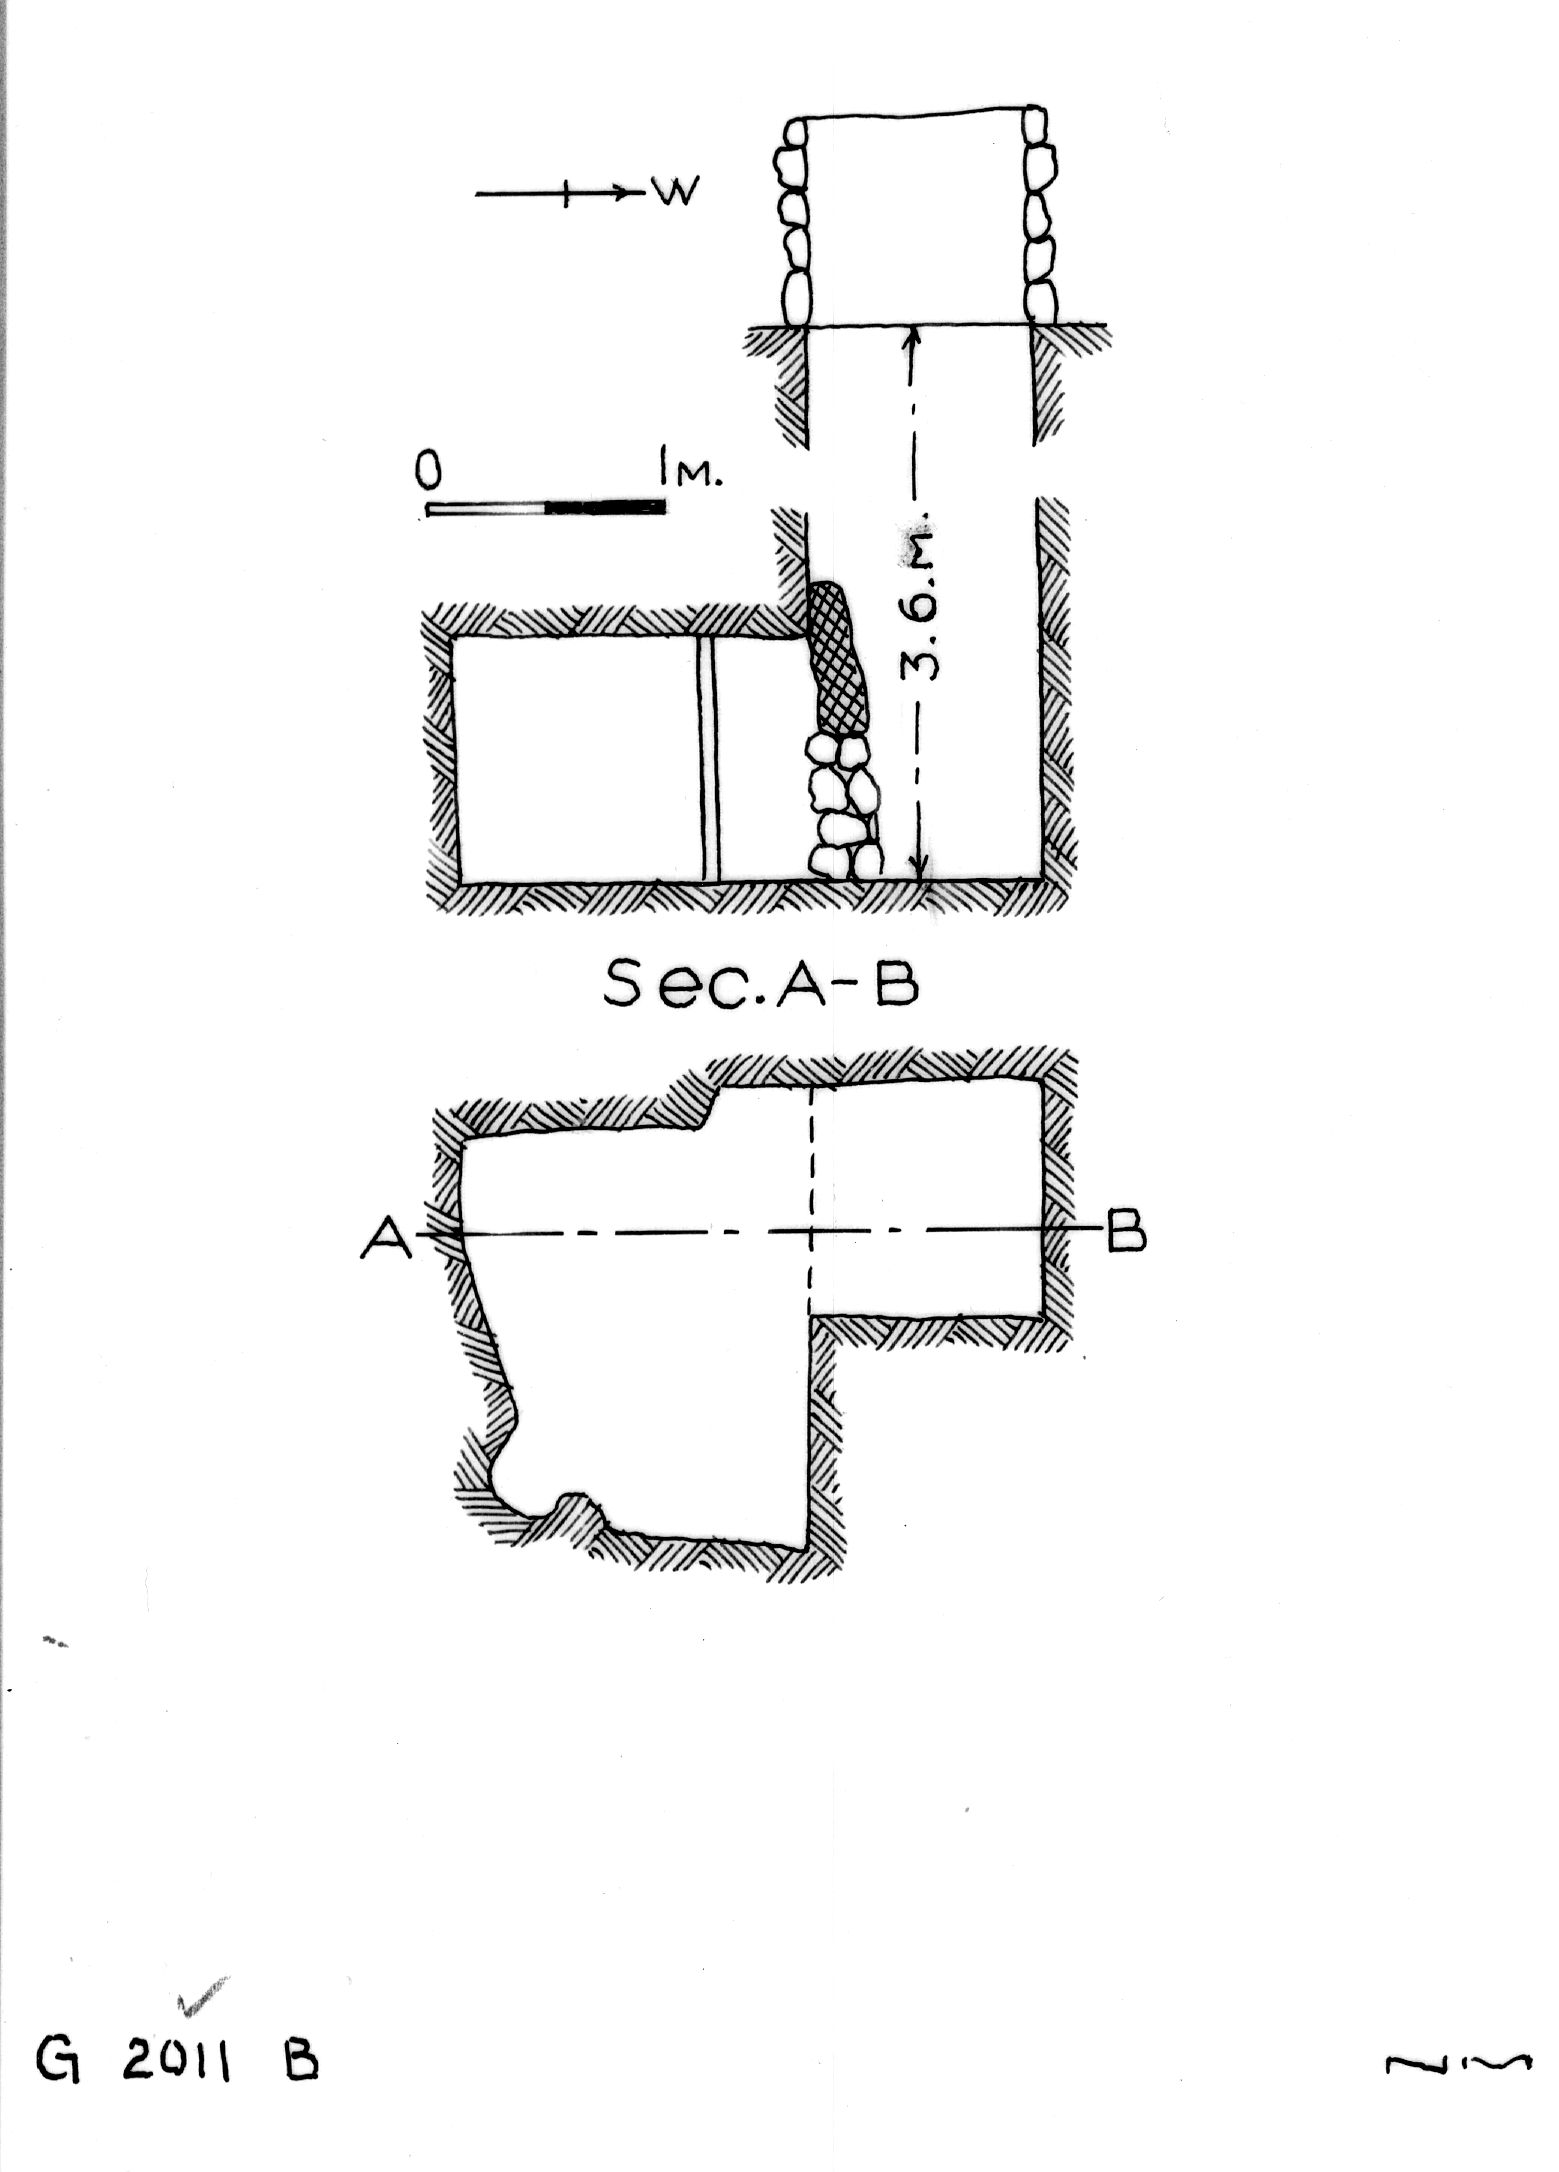 Maps and plans: G 2011, Shaft B